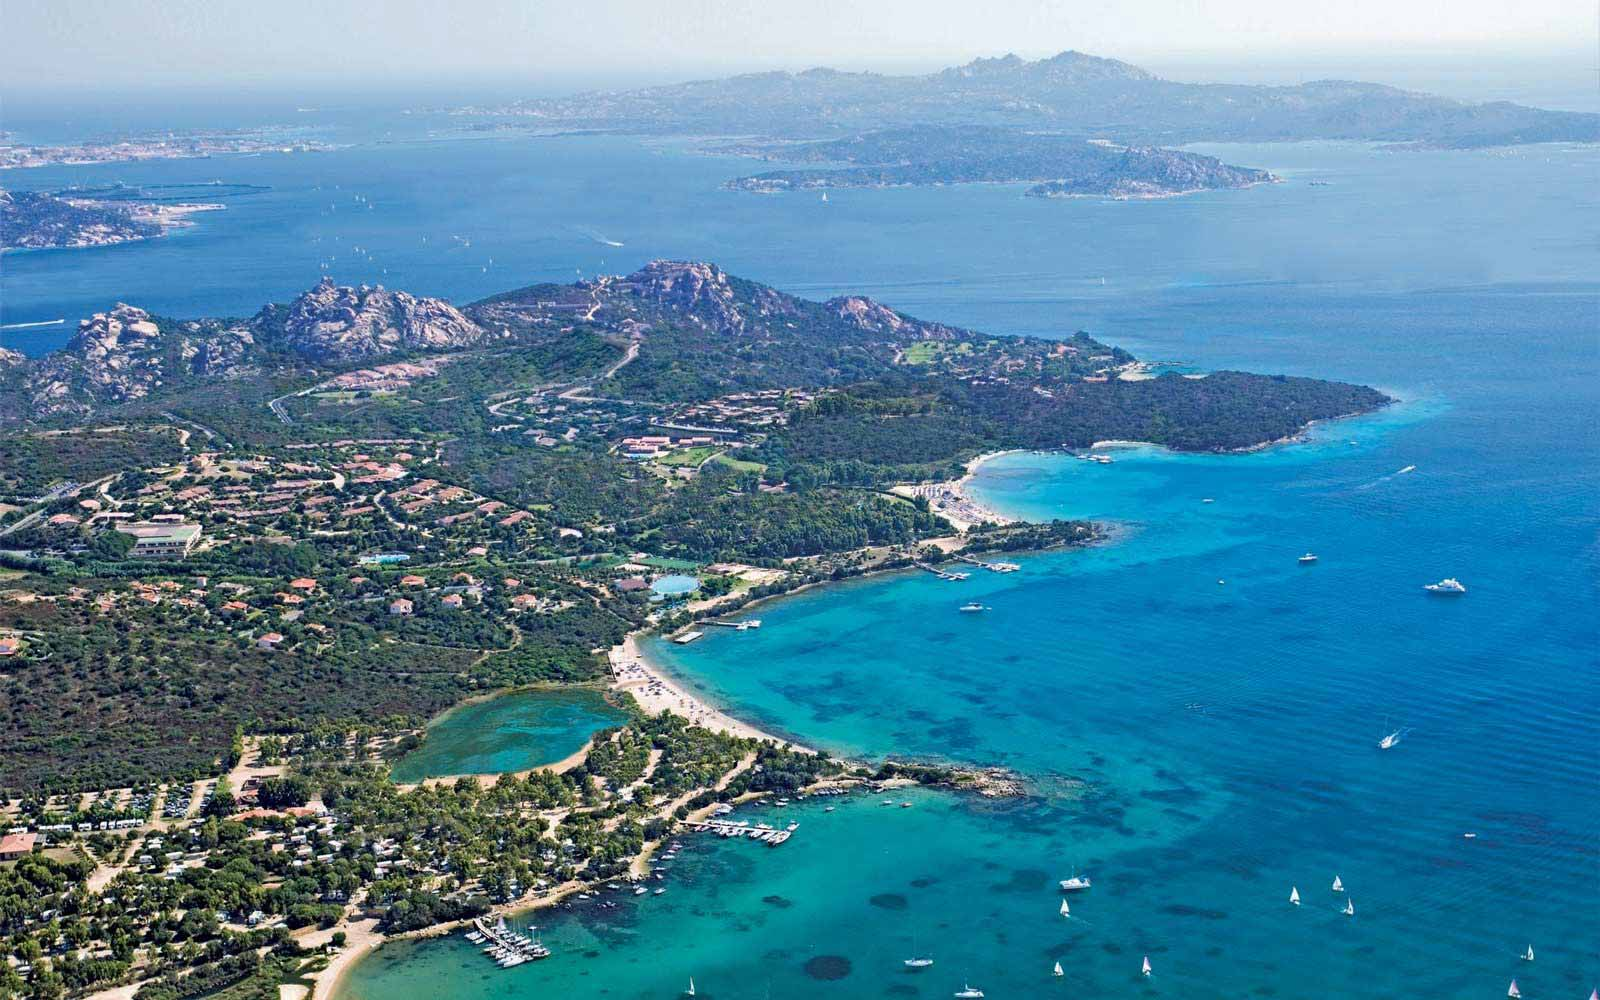 Bird's eye view of Palau and the Northern coast of Sardinia